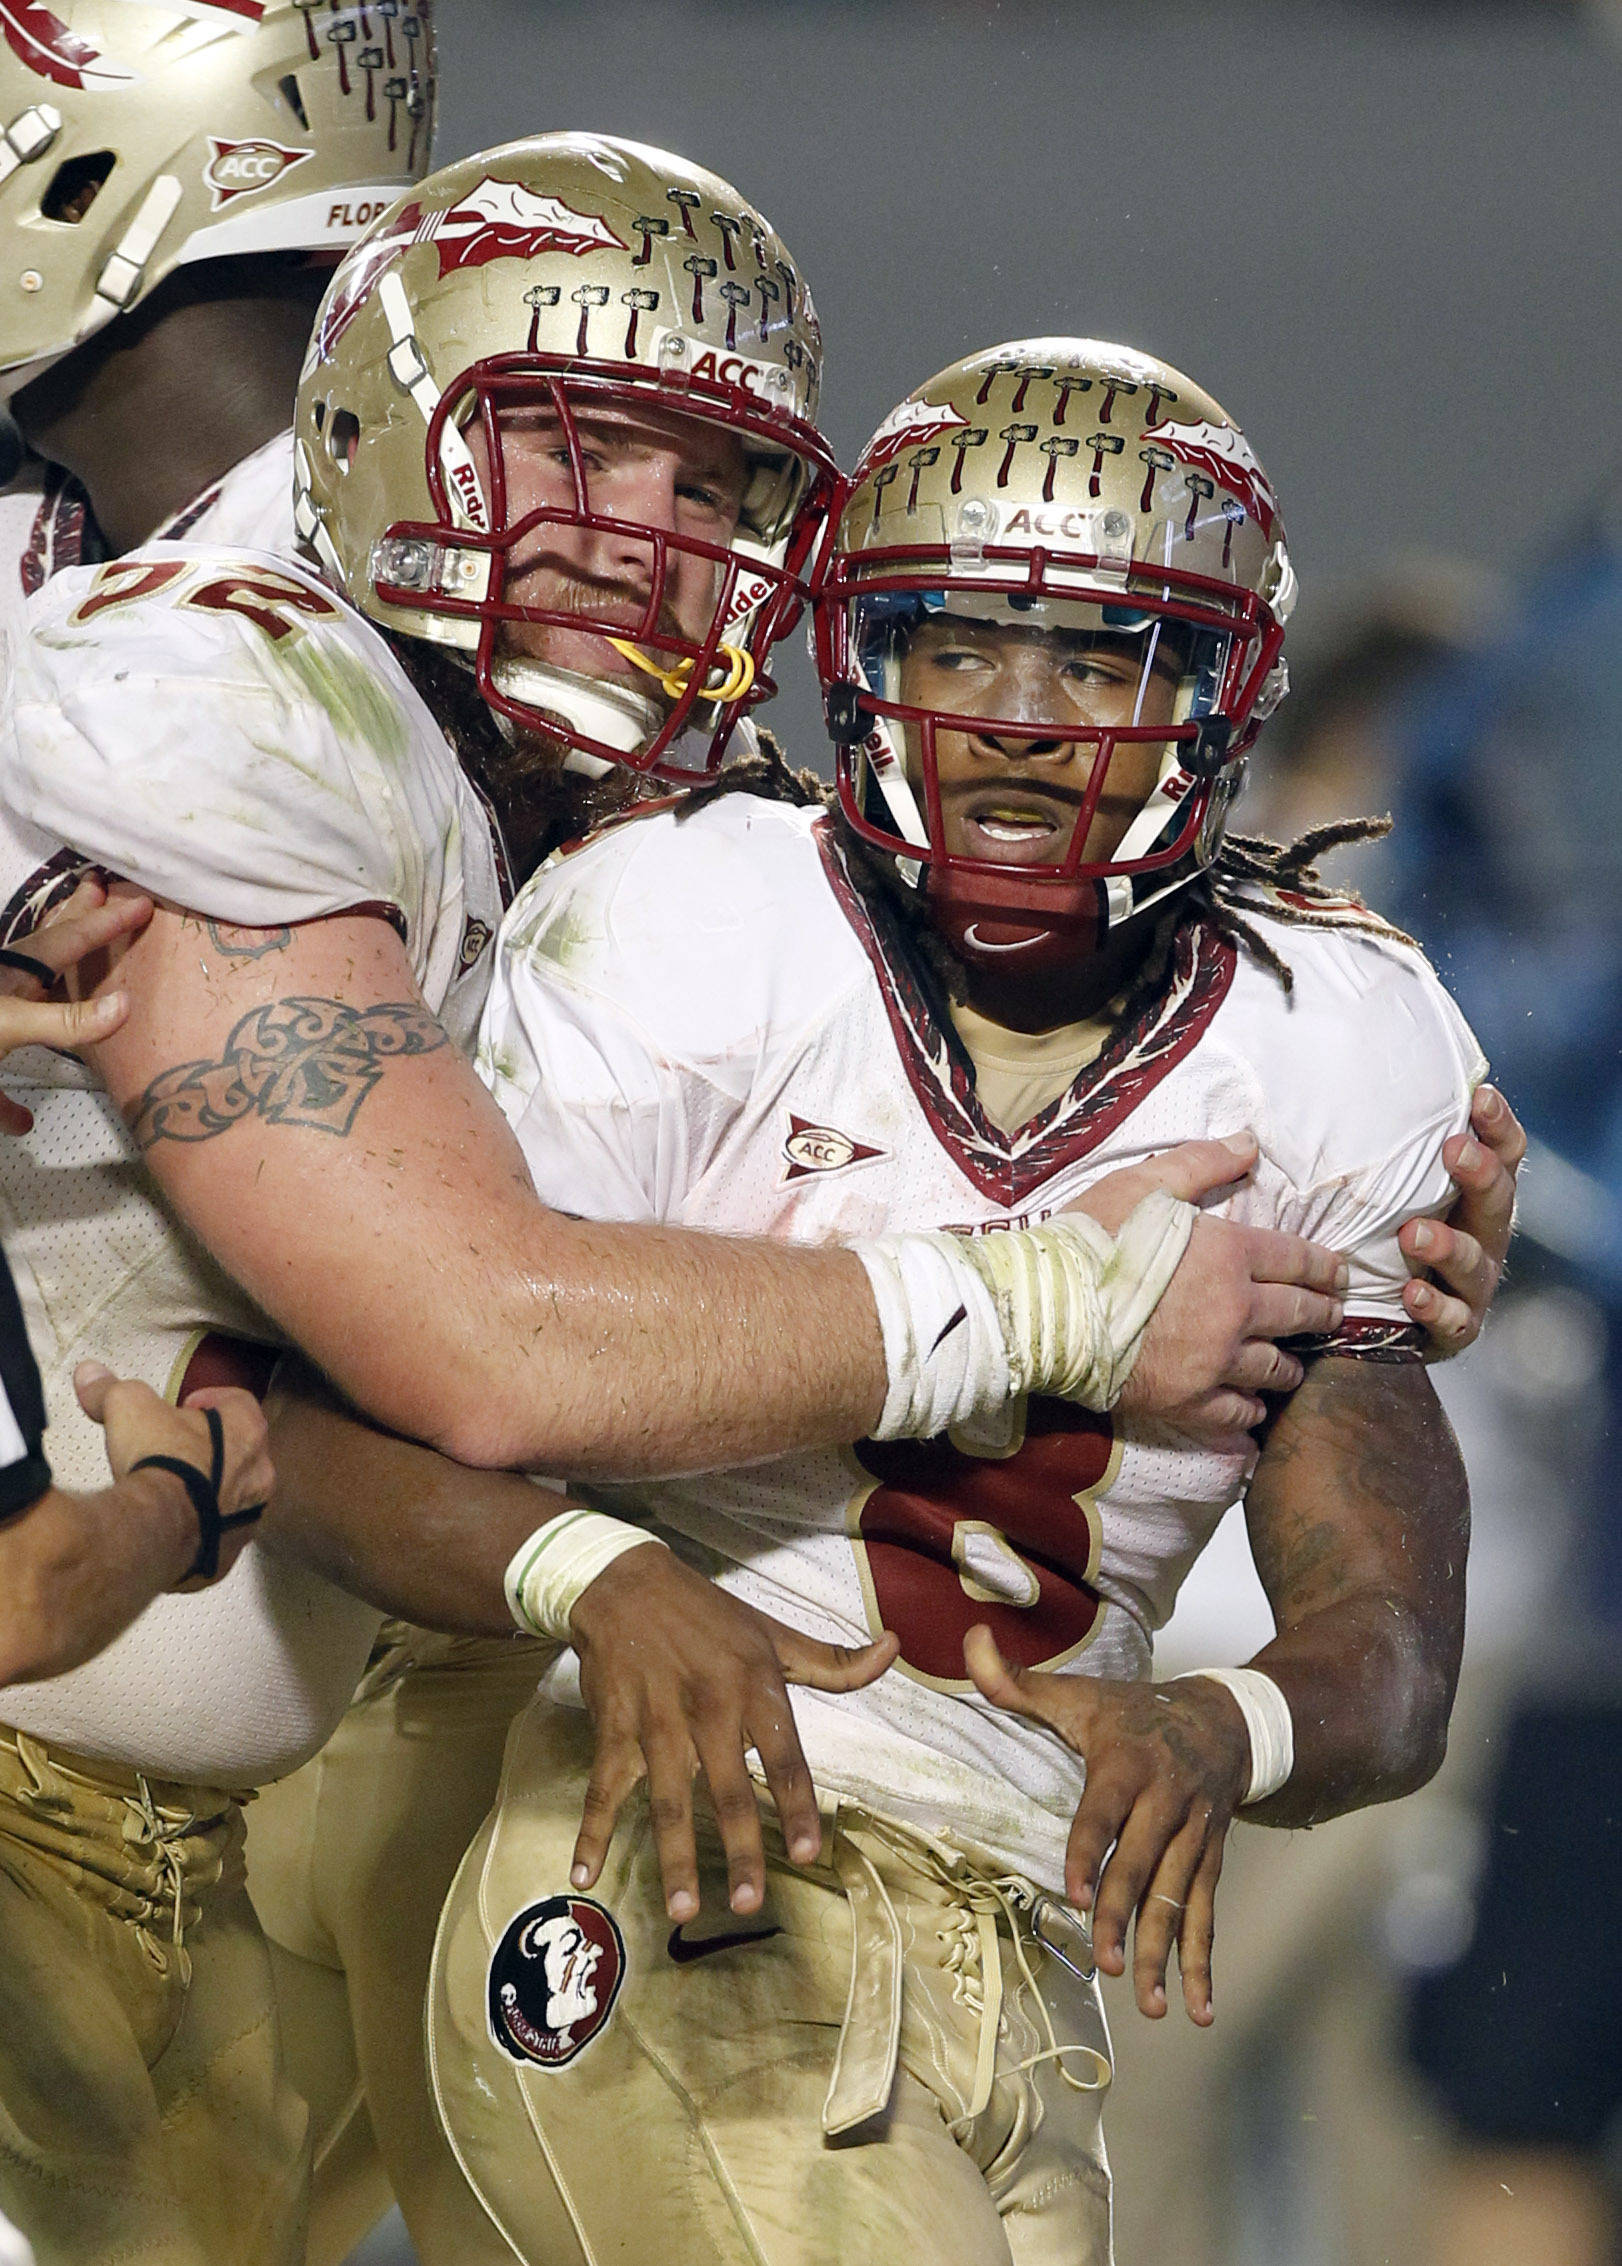 Florida State running back Devonta Freeman (8) is congratulated by Bryan Stork (52) after Freeman scored a touchdown against Miami during the second half of an NCAA college football game in Miami, Saturday, Oct. 20, 2012. Florida State won 33-20. (AP Photo/Alan Diaz)